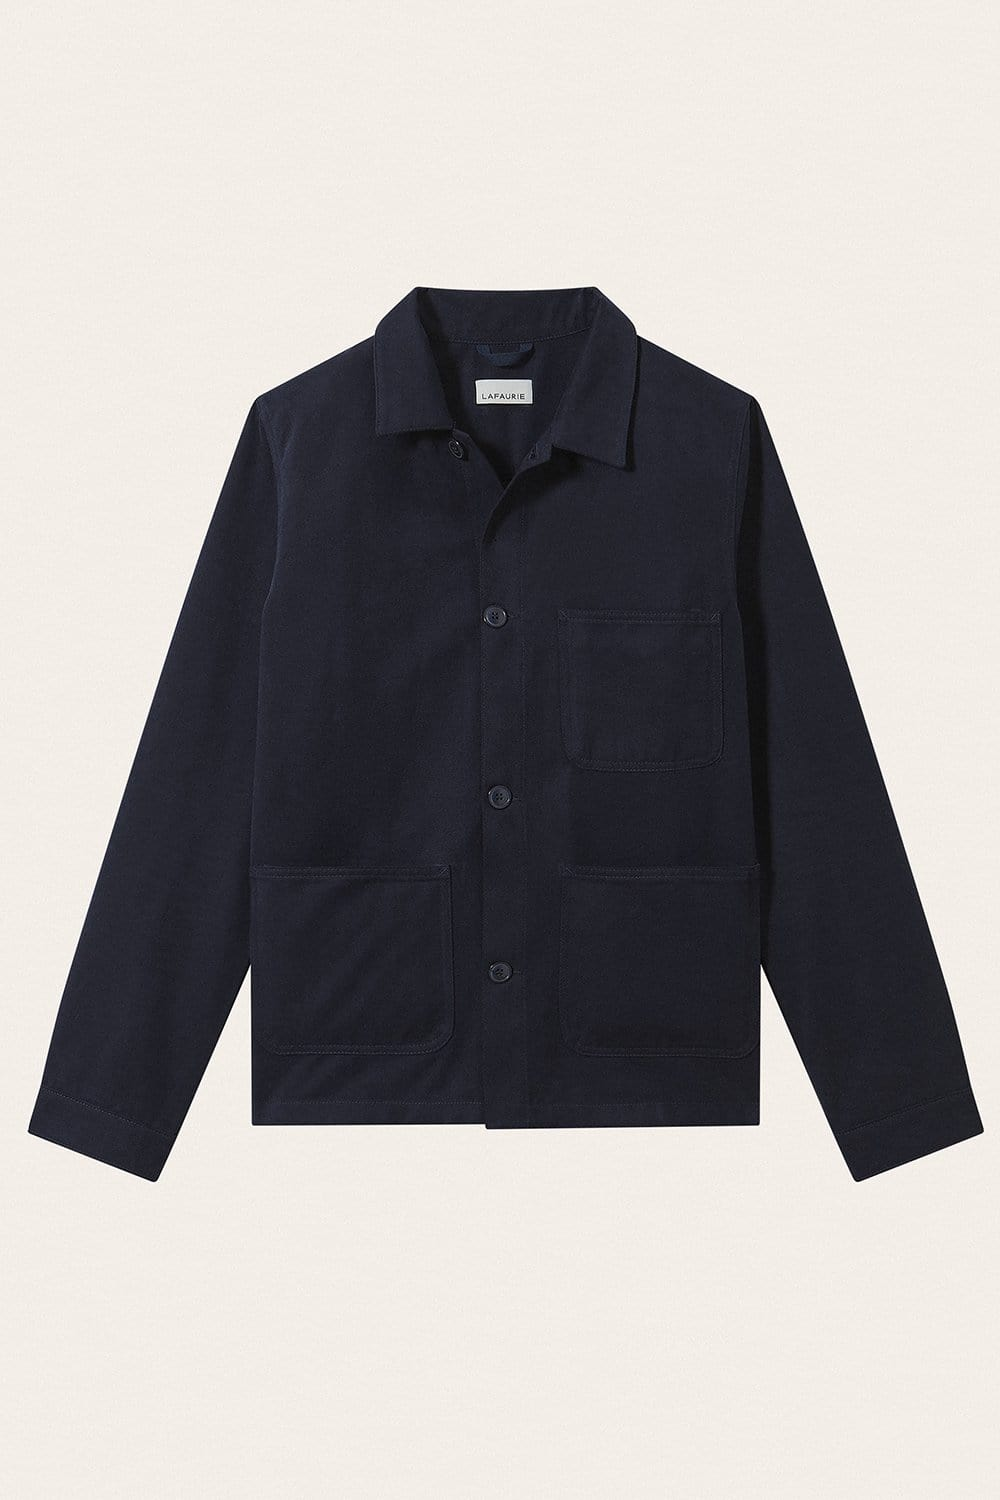 Veste Turner - Navy